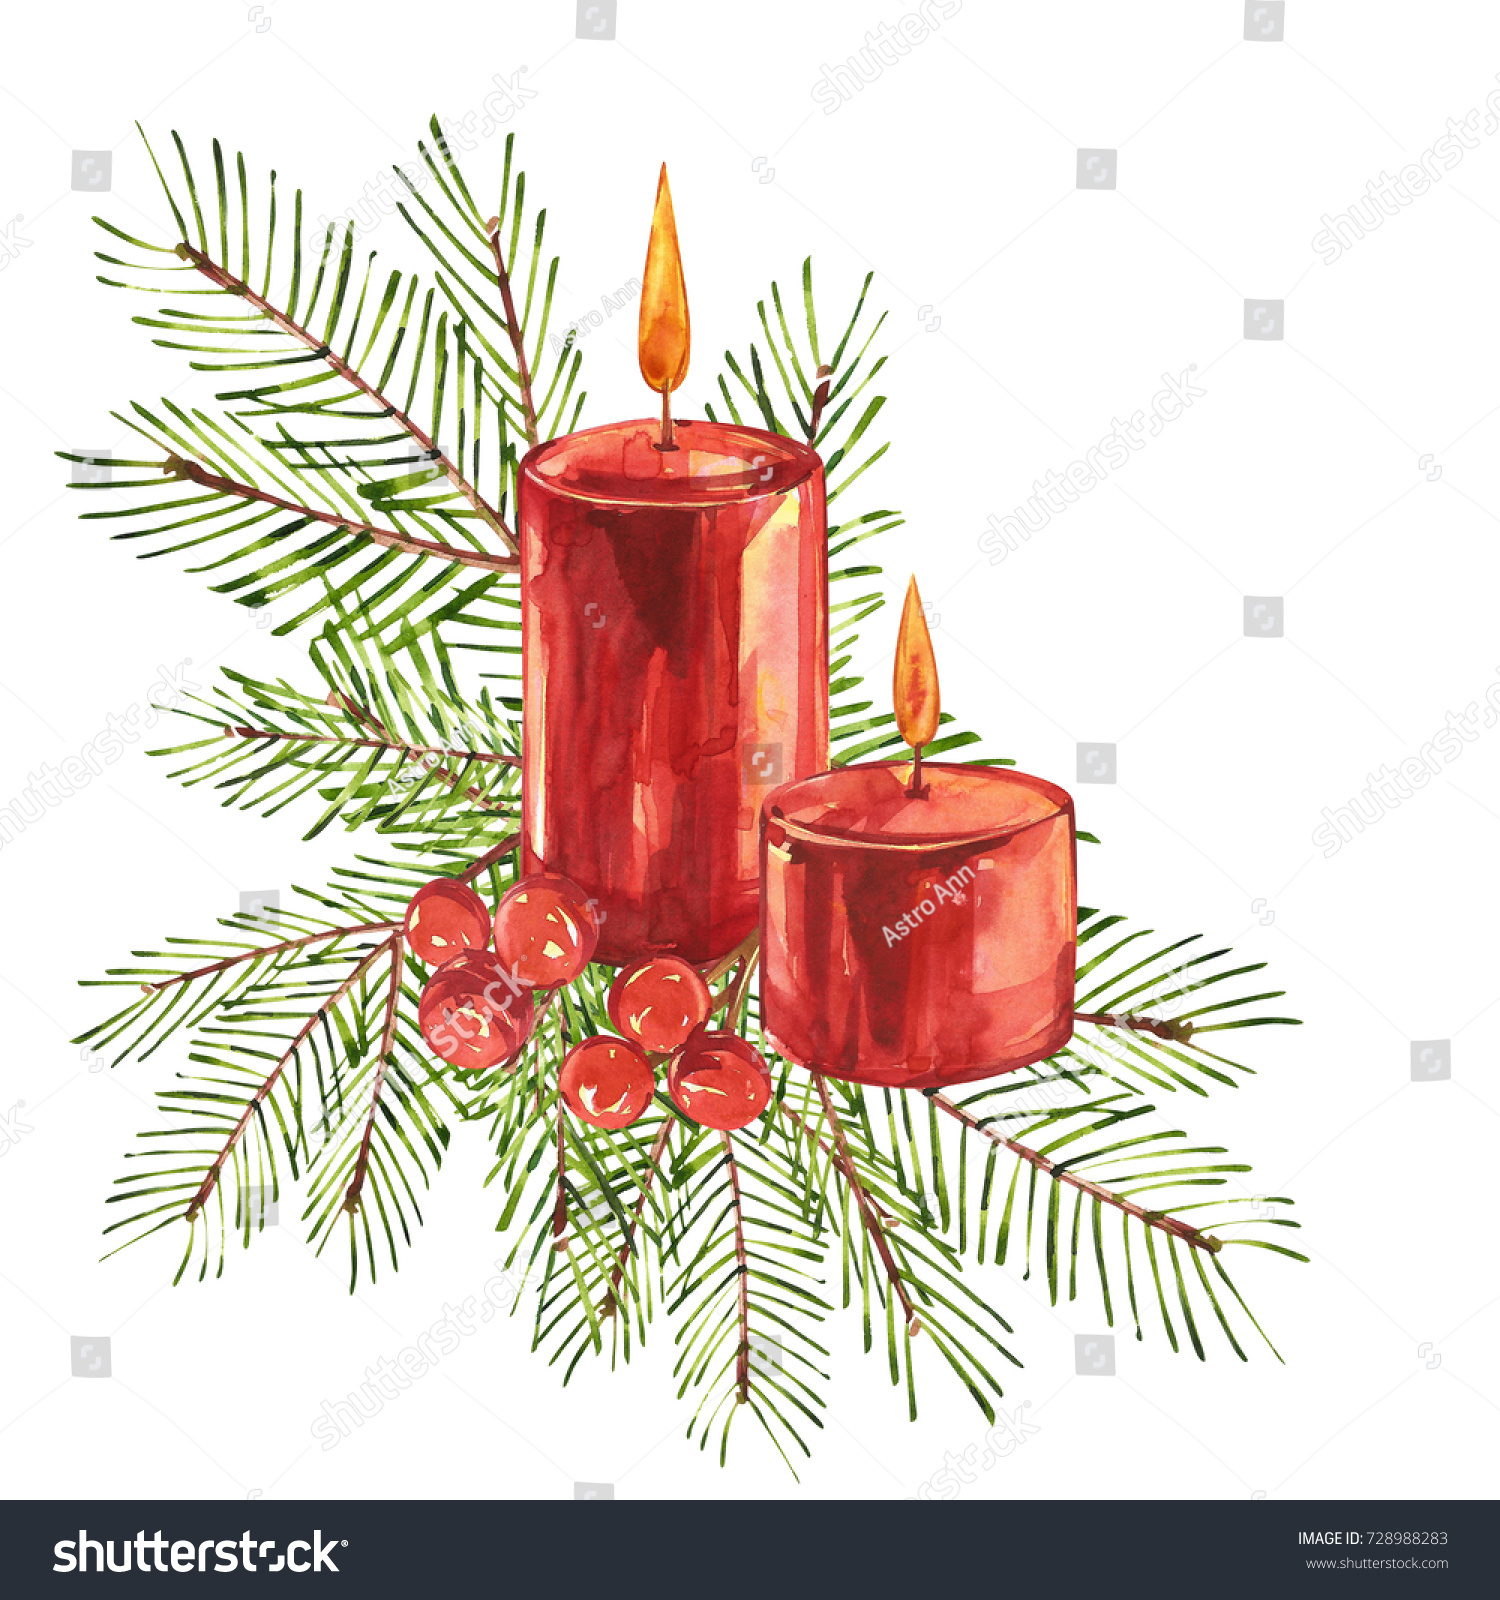 Vintage Christmas Candles.Vintage Christmas Illustrations Christmas Candle Tree Stock